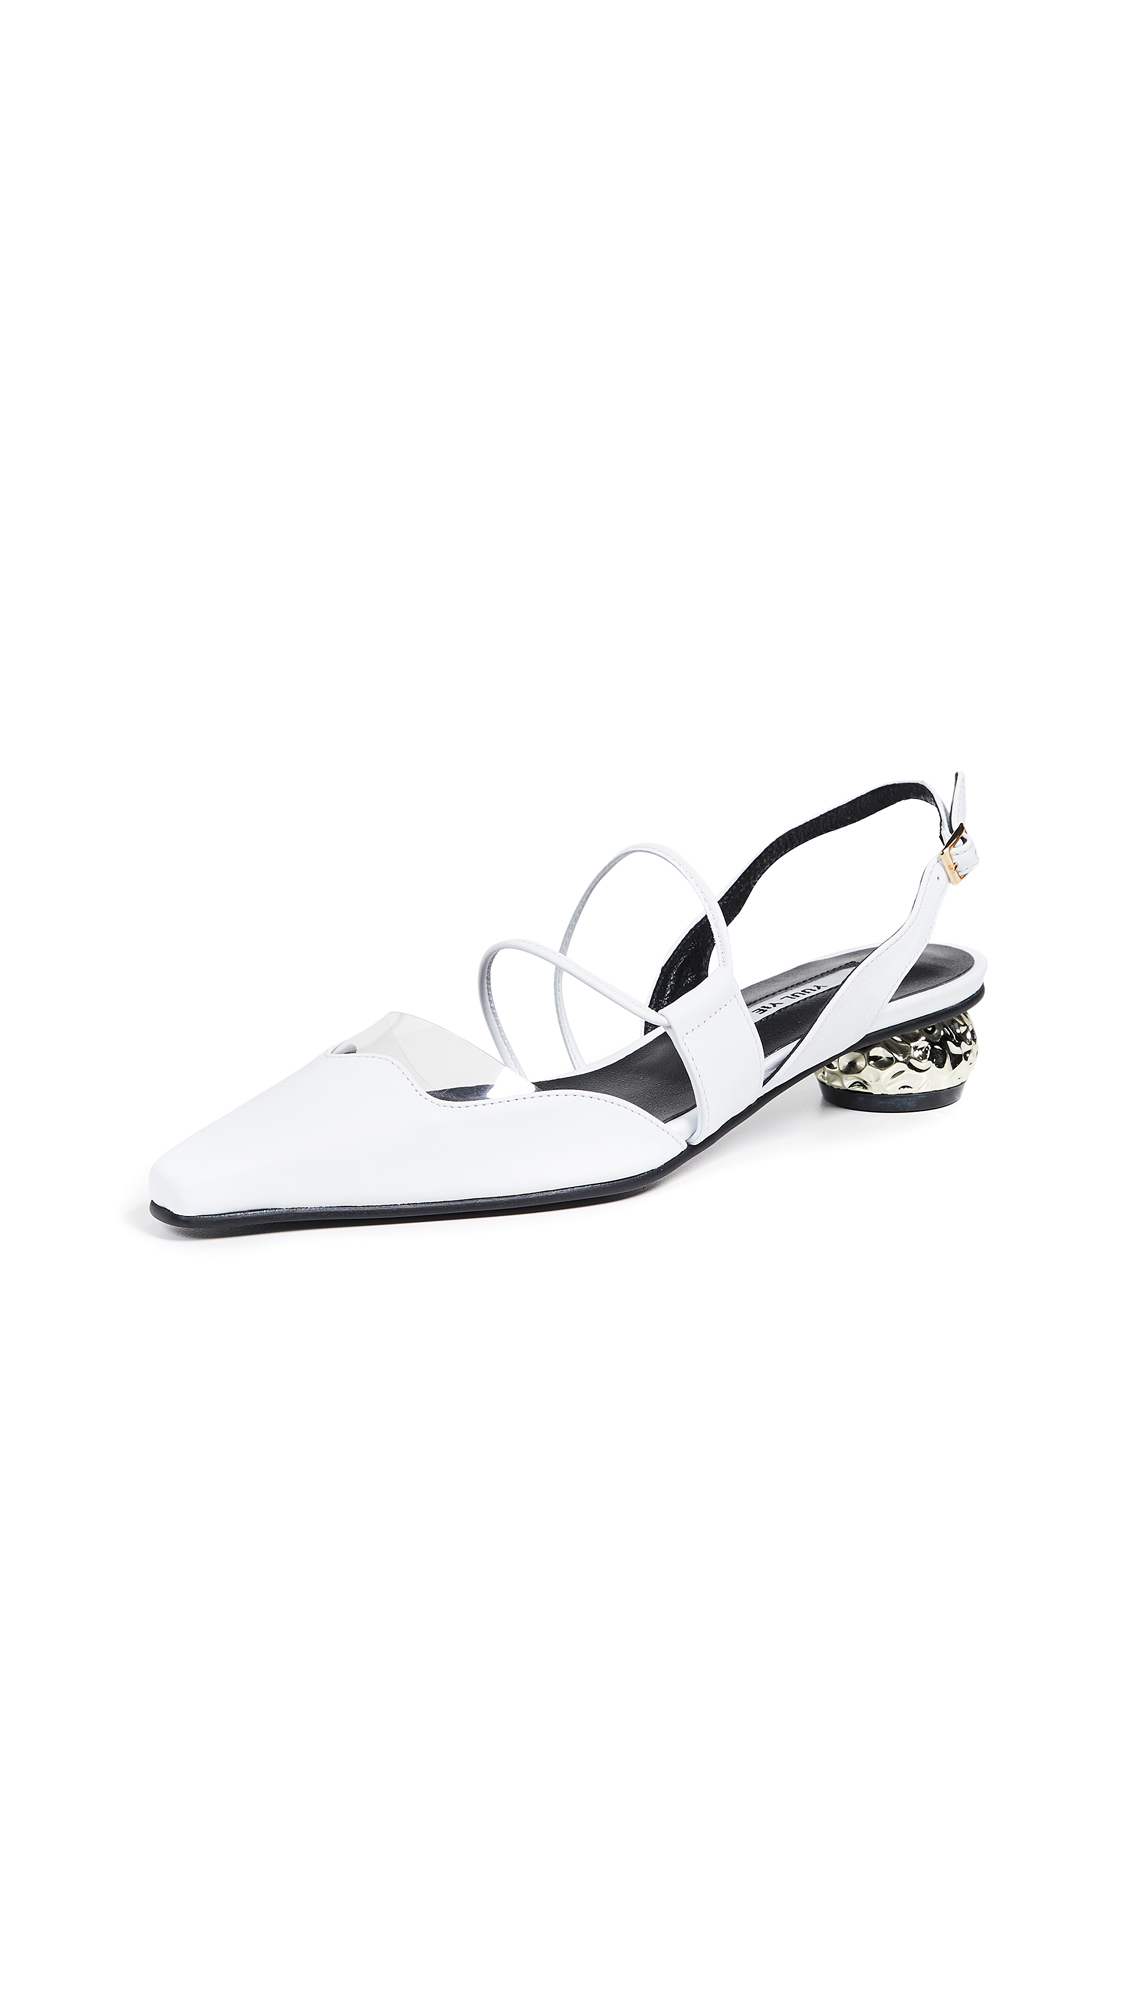 Yuul Yie Zili Sandals - White